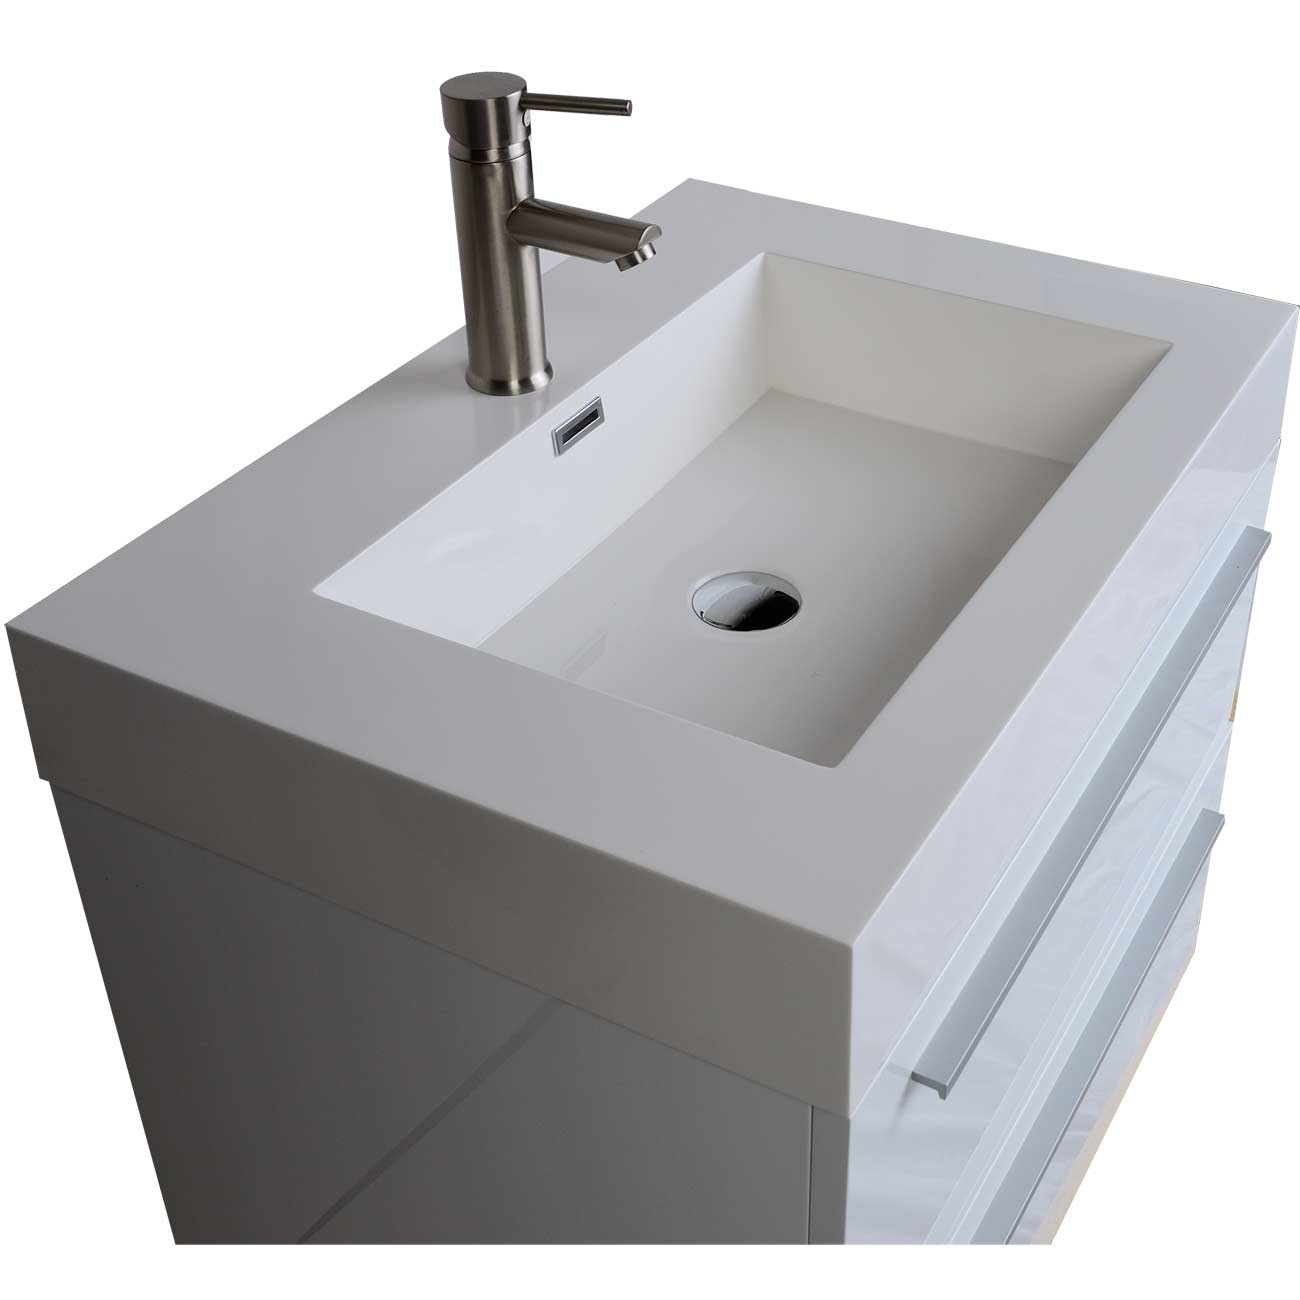 Buy in single bathroom vanity set in high gloss for Restroom vanity